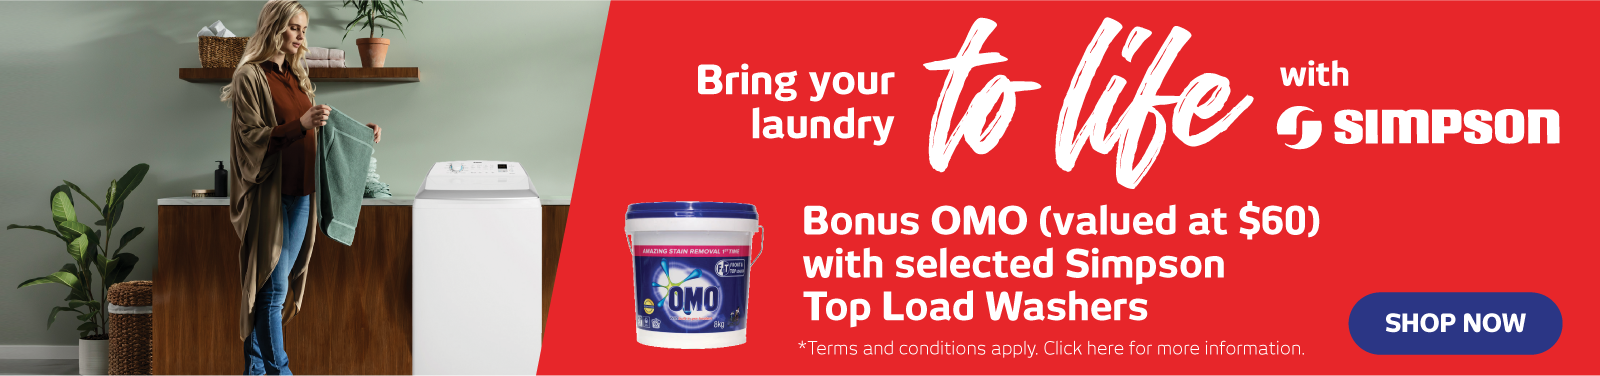 Laundry Catalogue/Bonus Omo with Simpson Washers